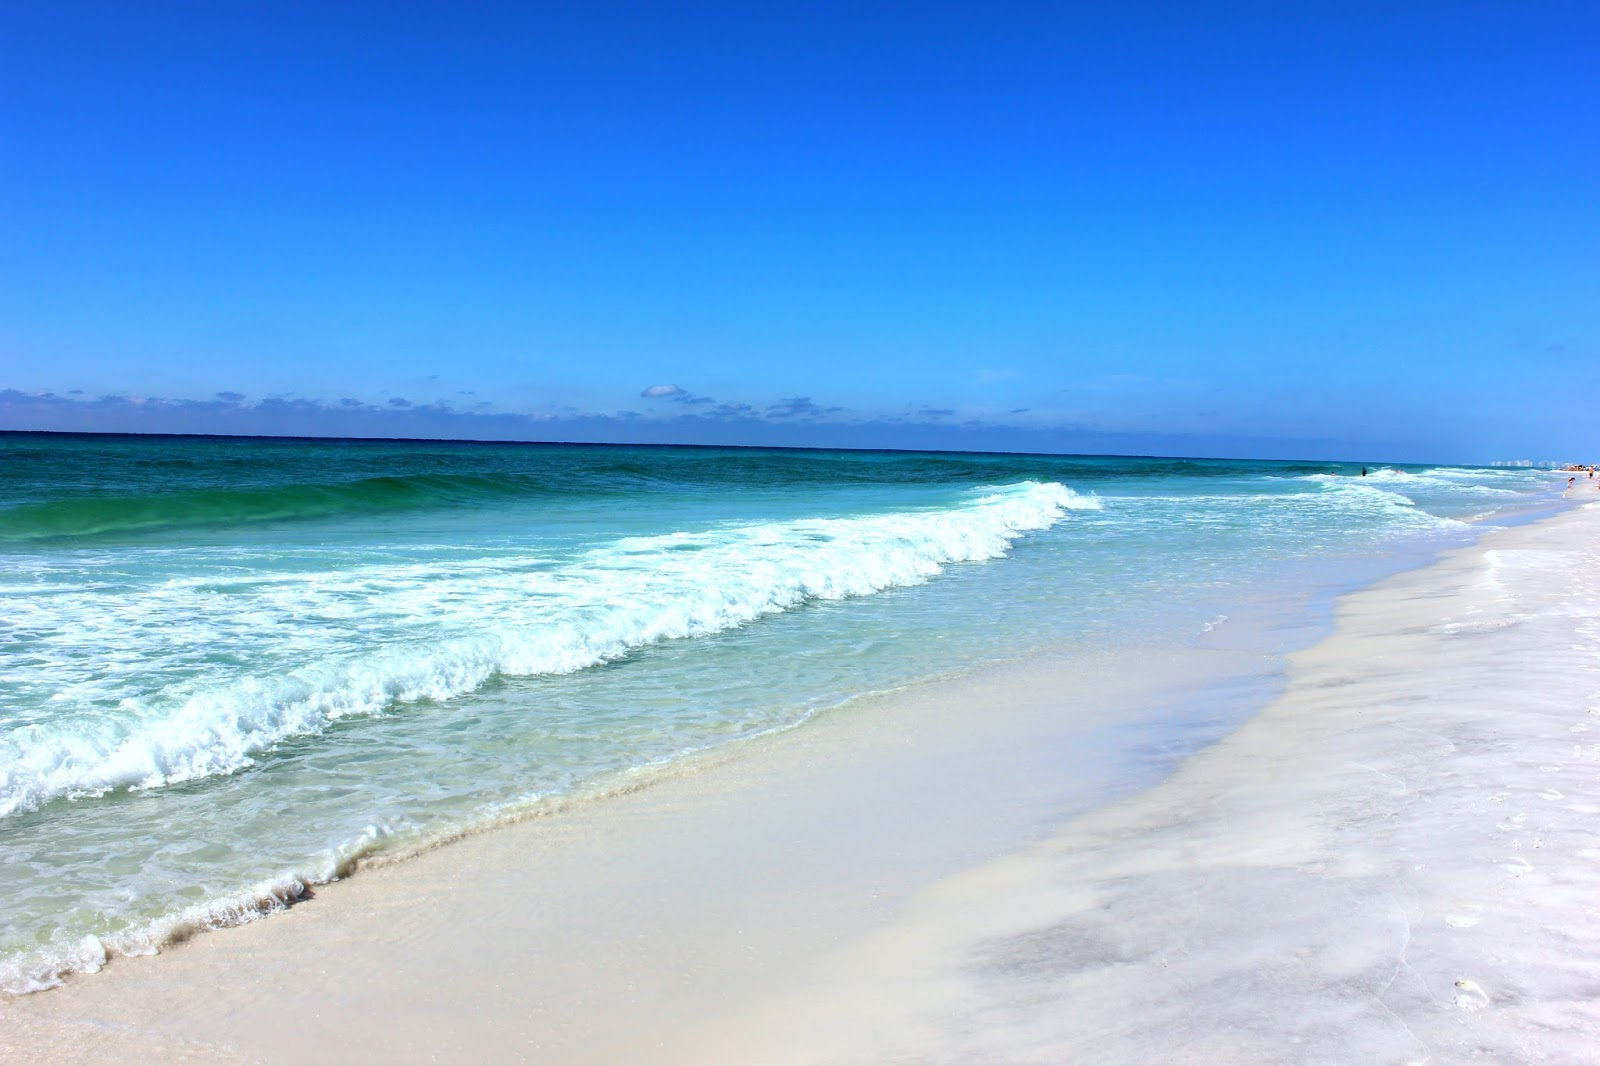 I Got To Stay At The Sandestin Golf And Beach Resort In South Walton Fl It Was Spectacular Want Go Back Riiiight Now You Will Too